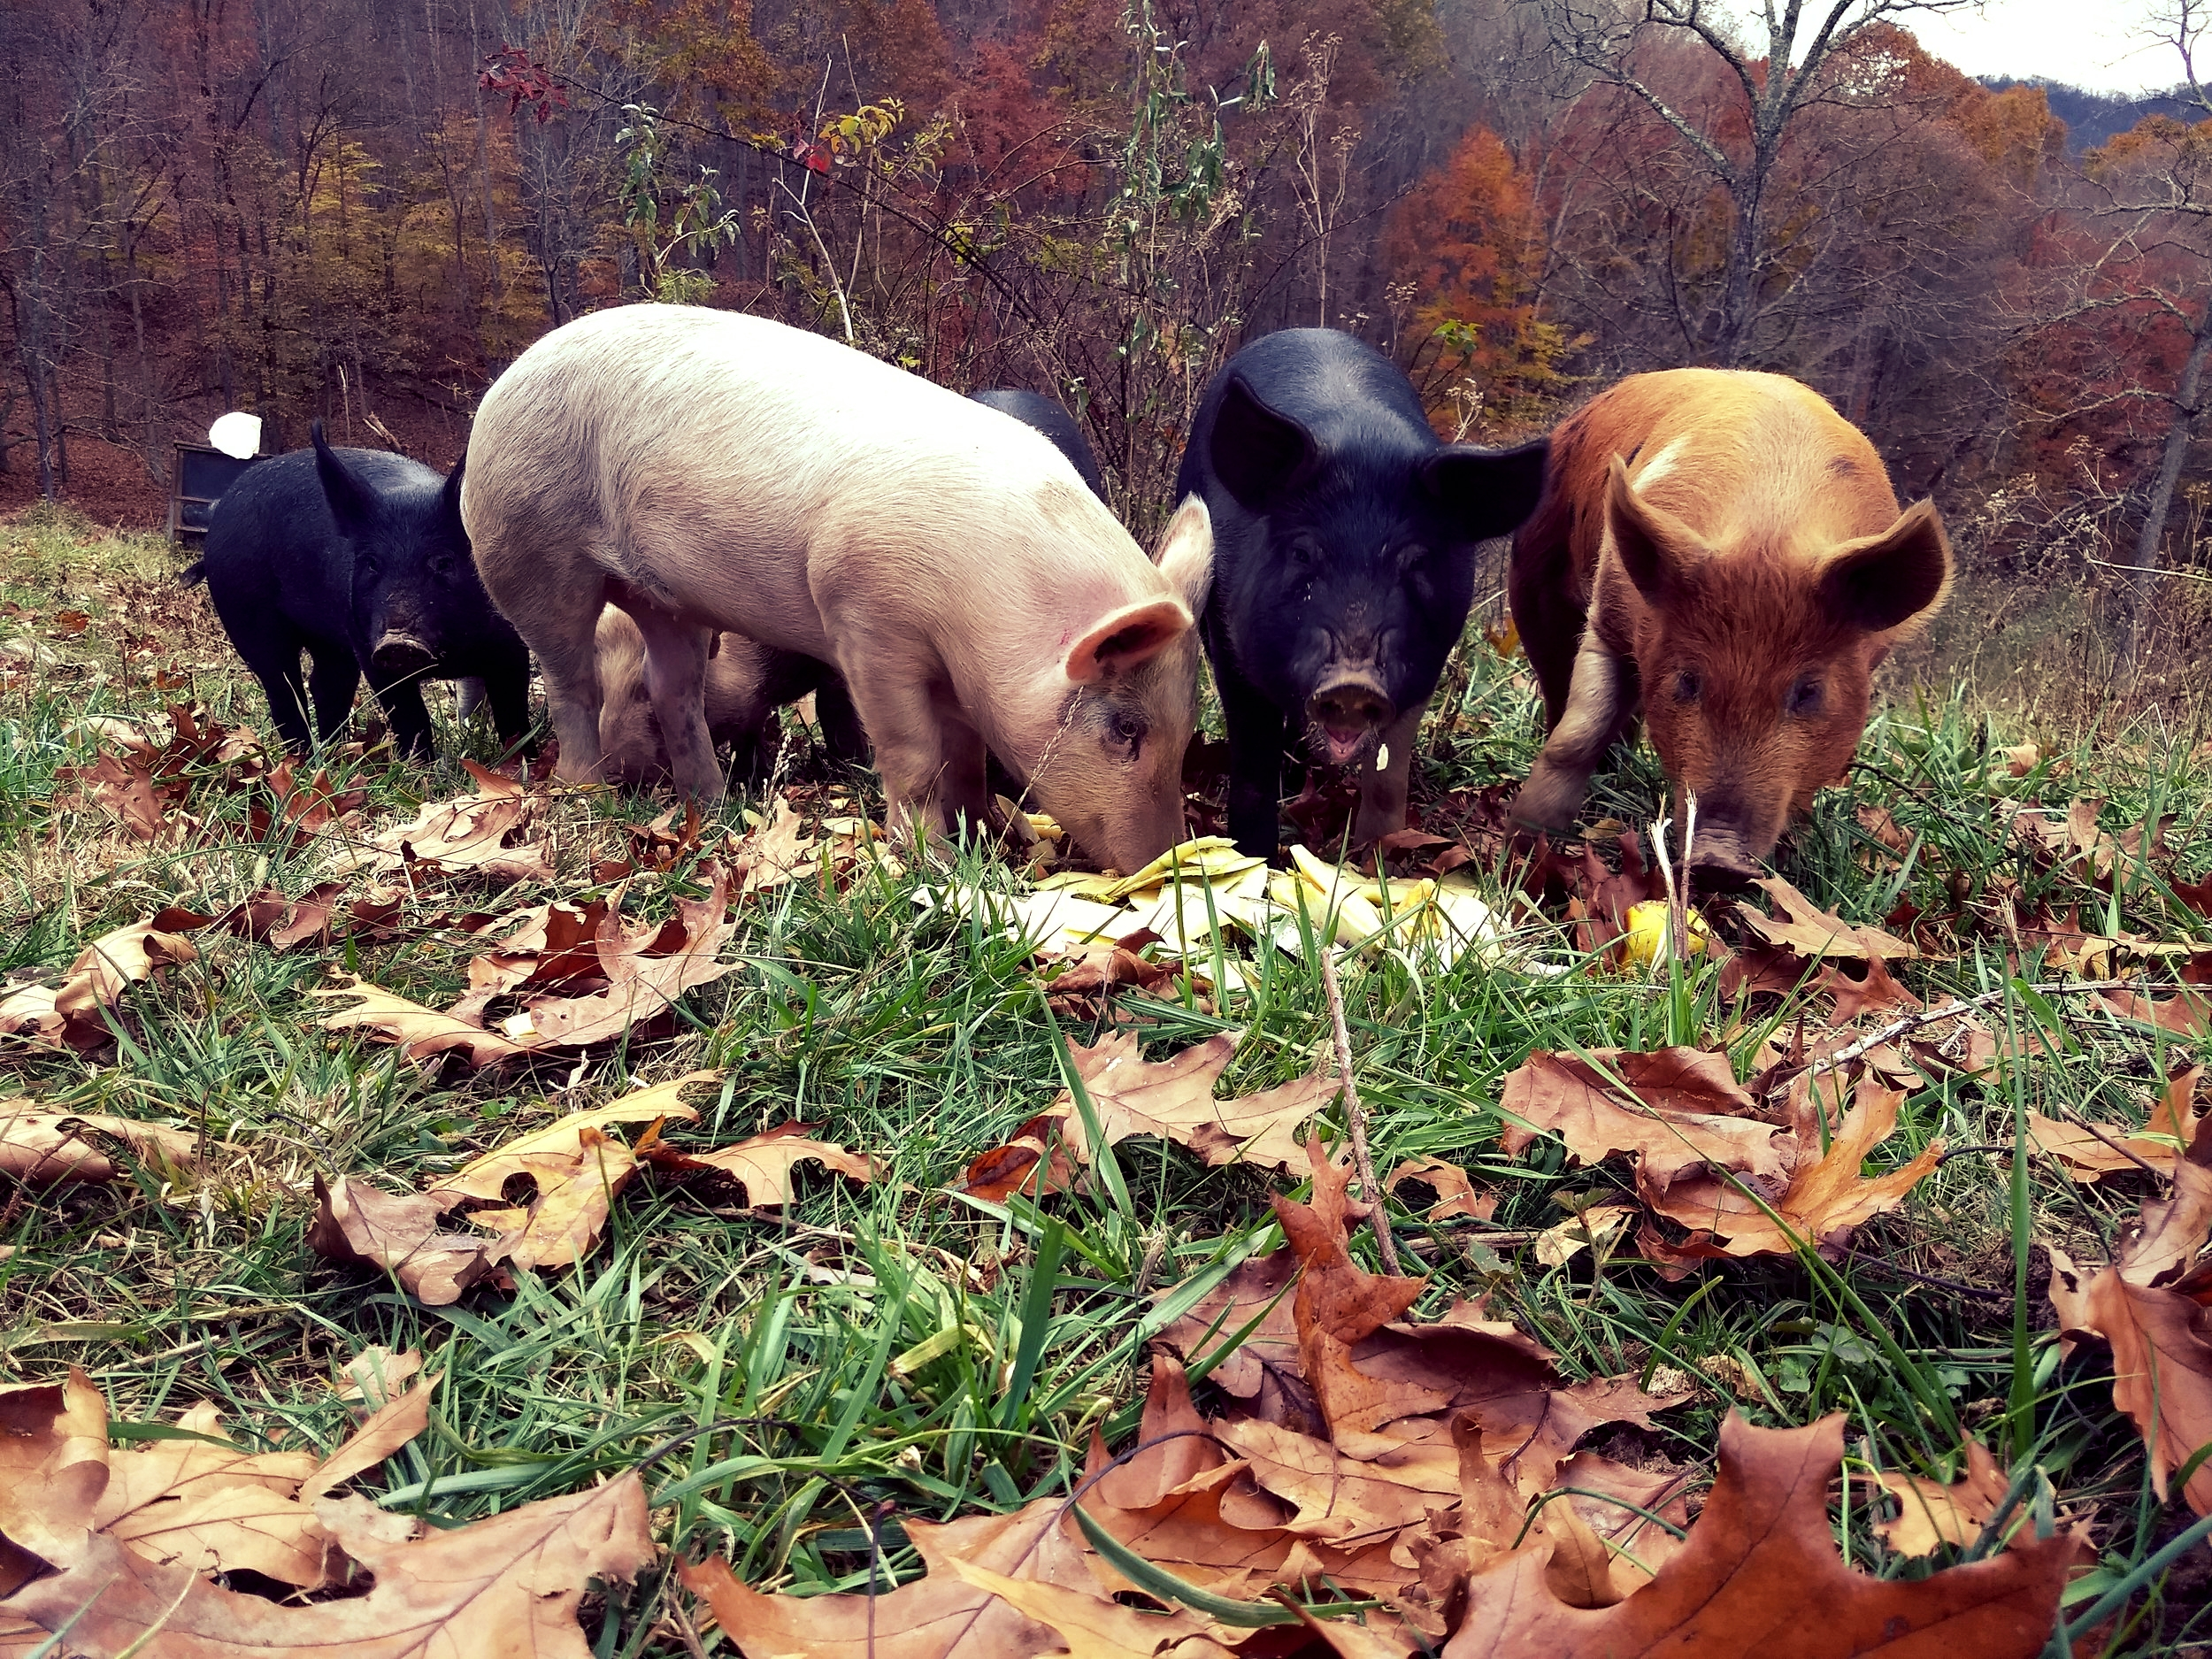 The Pigs - The pigs have continued to do well through this cold fall weather. We did have their pond freeze over and the pipe freeze a few times. Thankfully it was during the wetter cold days so they weren't requiring quite as much water. They are definitely getting very big and fattening up well! As you can see in the picture they are enjoying some delicious squash peelings.